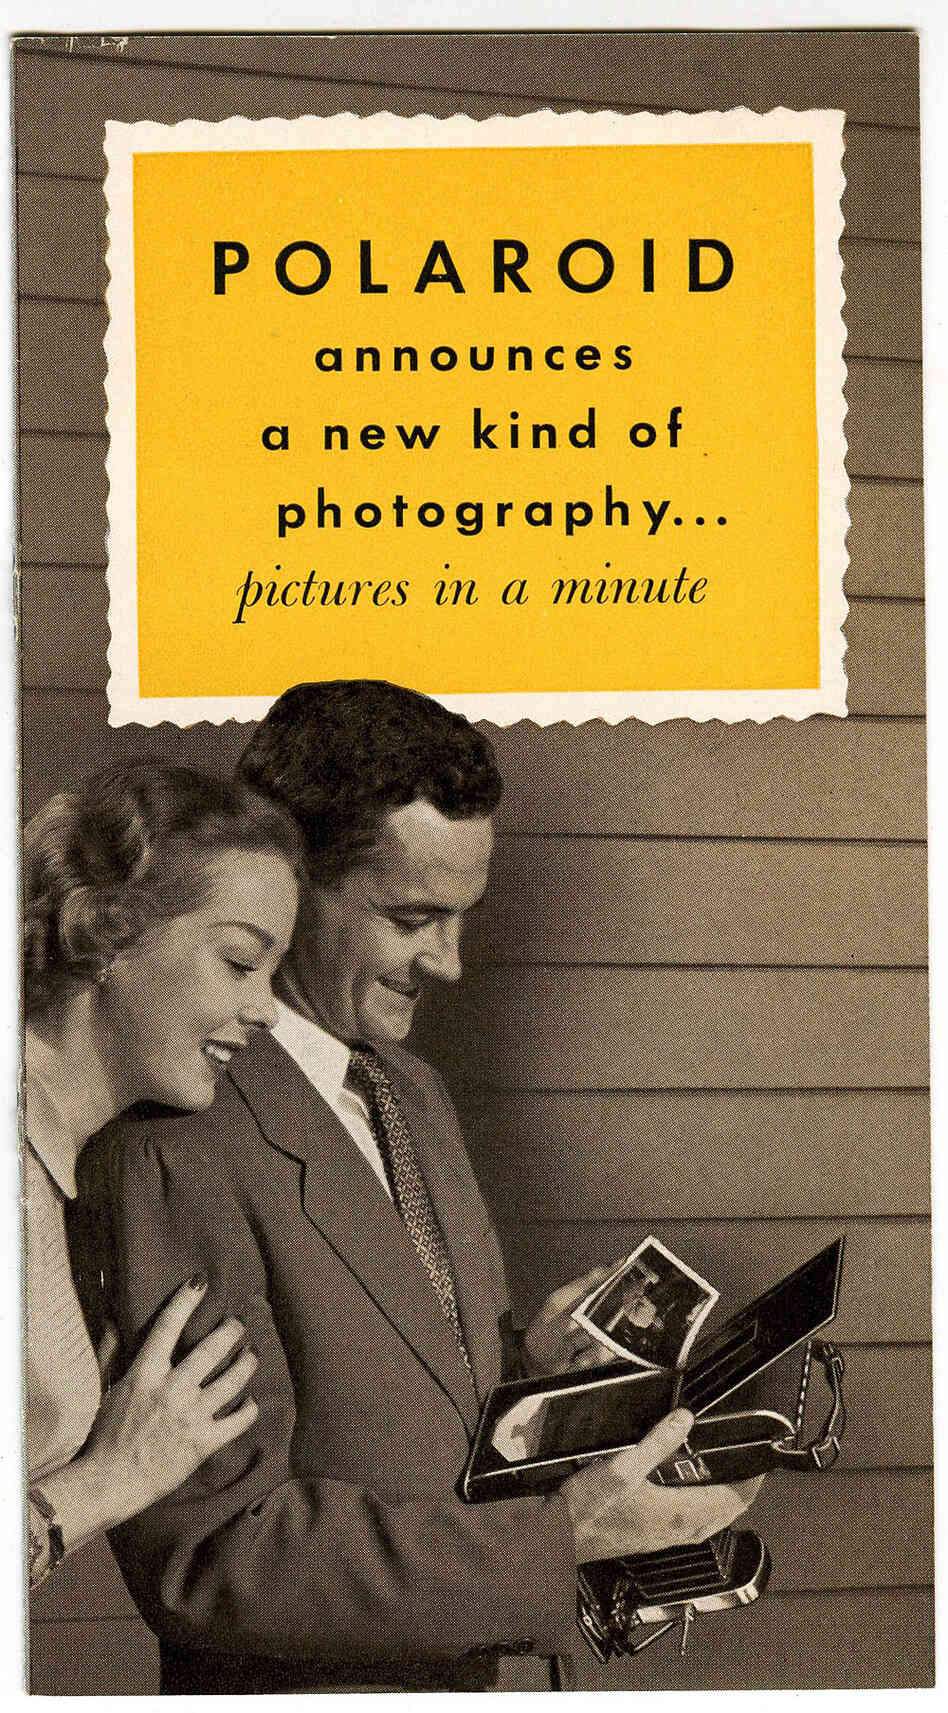 Polaroid's creator Edwin Land debuted his first instant camera in 1948.